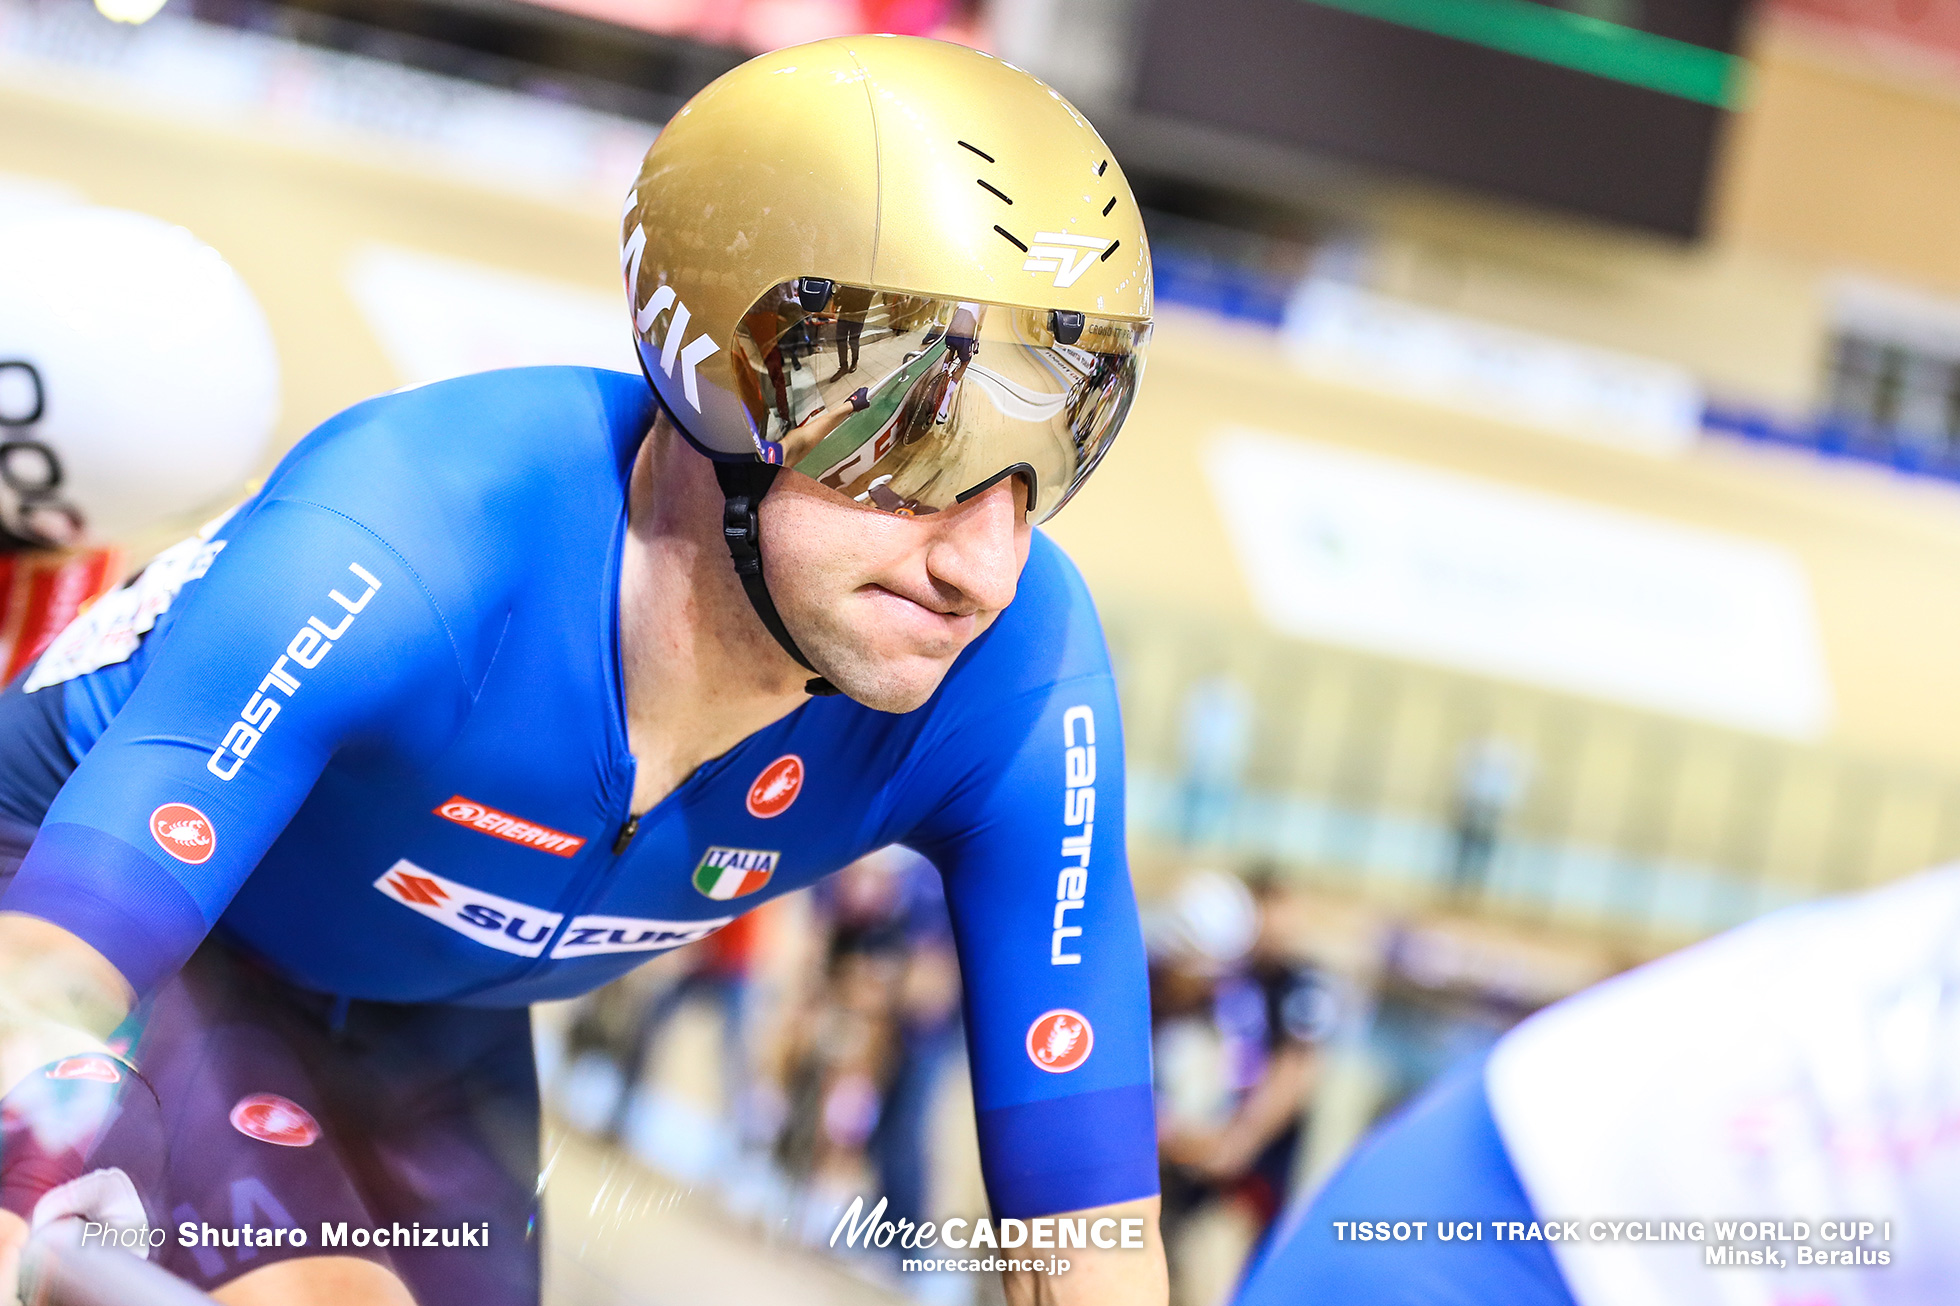 Elia Viviani (ITA), Point Race / Men's Omnium / TISSOT UCI TRACK CYCLING WORLD CUP I, Minsk, Beralus